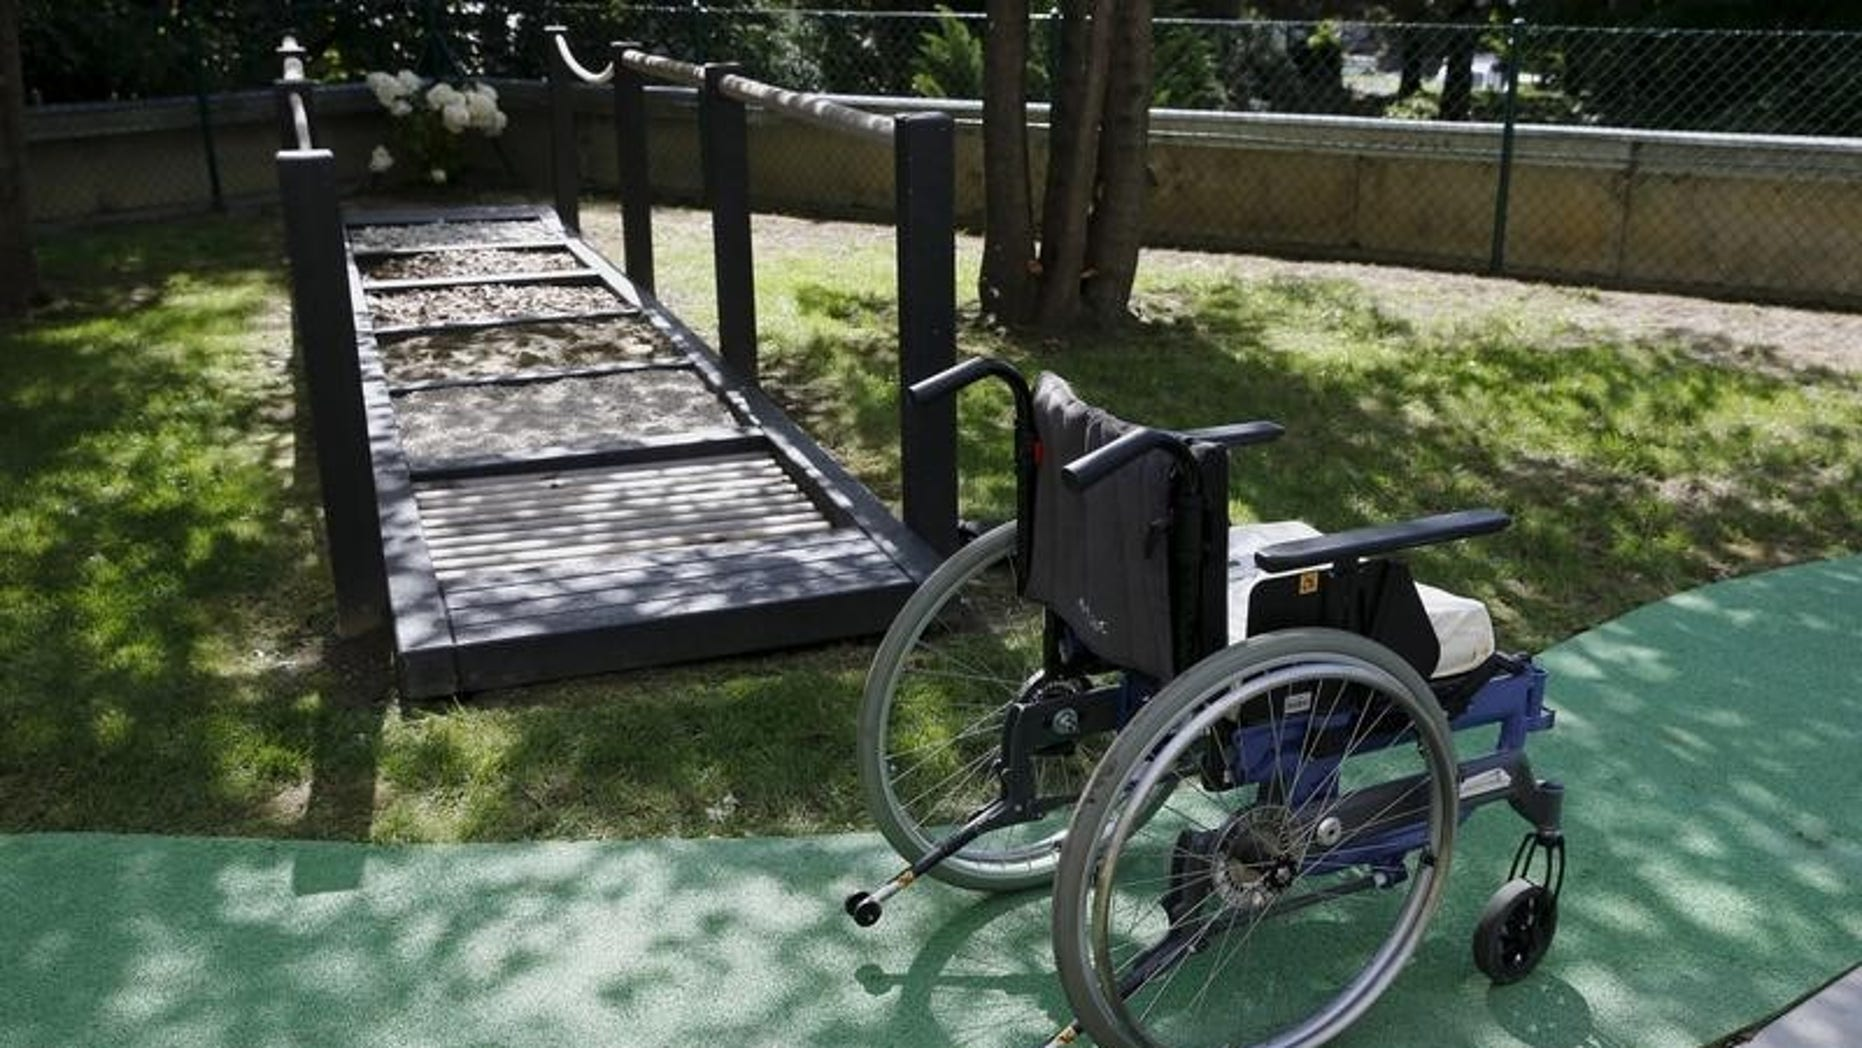 A wheelchair is pictured next to a walking frame during a media presentation in the 300-square-metre therapeutic garden of the Acute Neurological Rehabilitation Unit at Lausanne University Hospital (CHUV) in Lausanne, Switzerland, August 25, 2015. REUTERS/Denis Balibouse